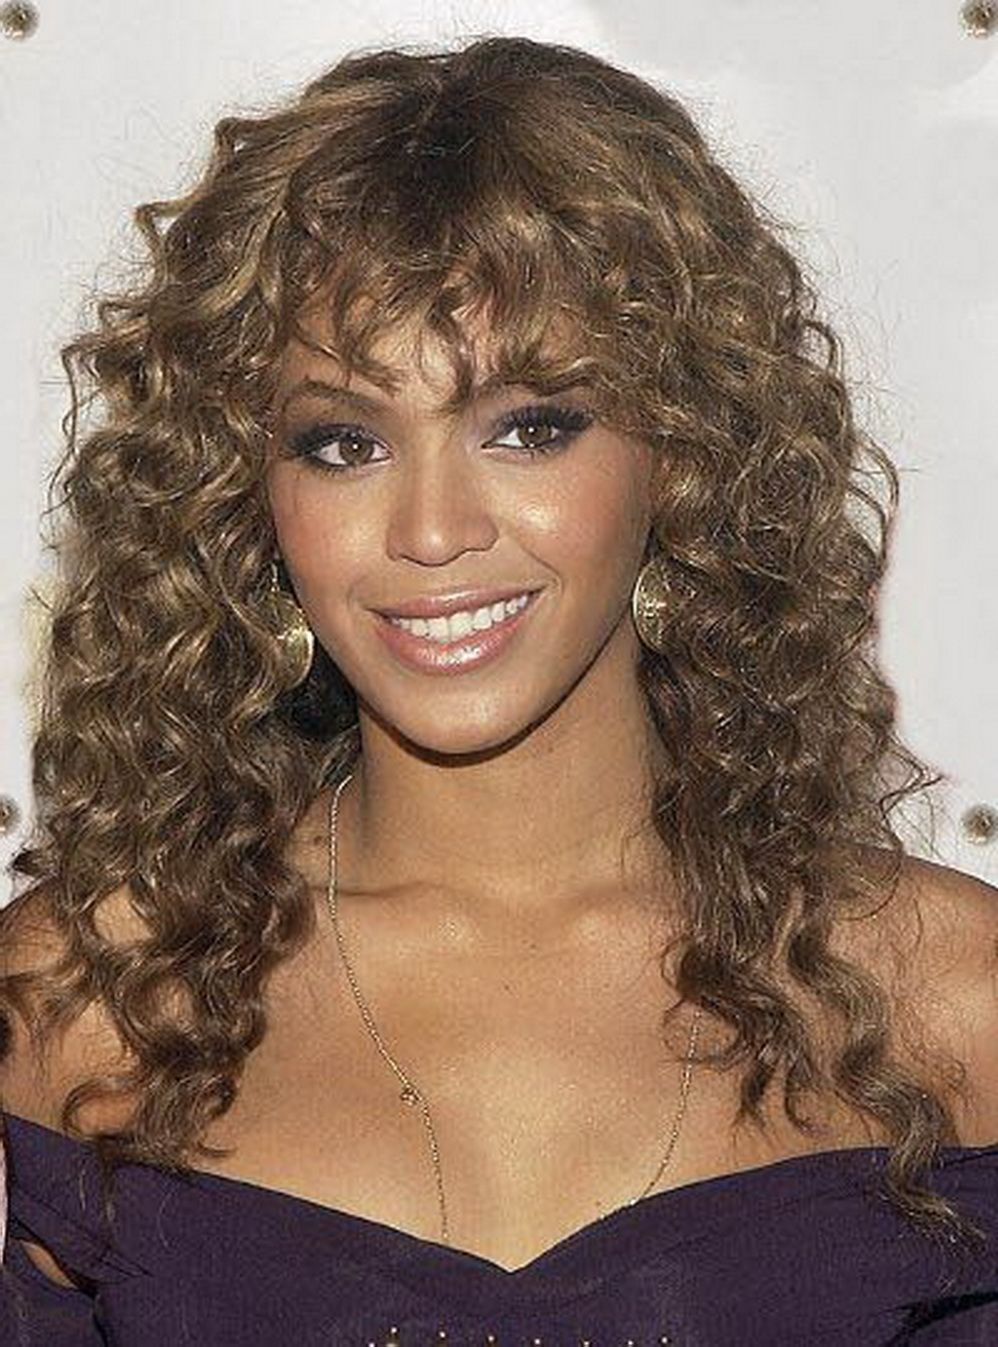 Surprising 1000 Images About Curly Bangs On Pinterest Naturally Curly Hair Short Hairstyles For Black Women Fulllsitofus